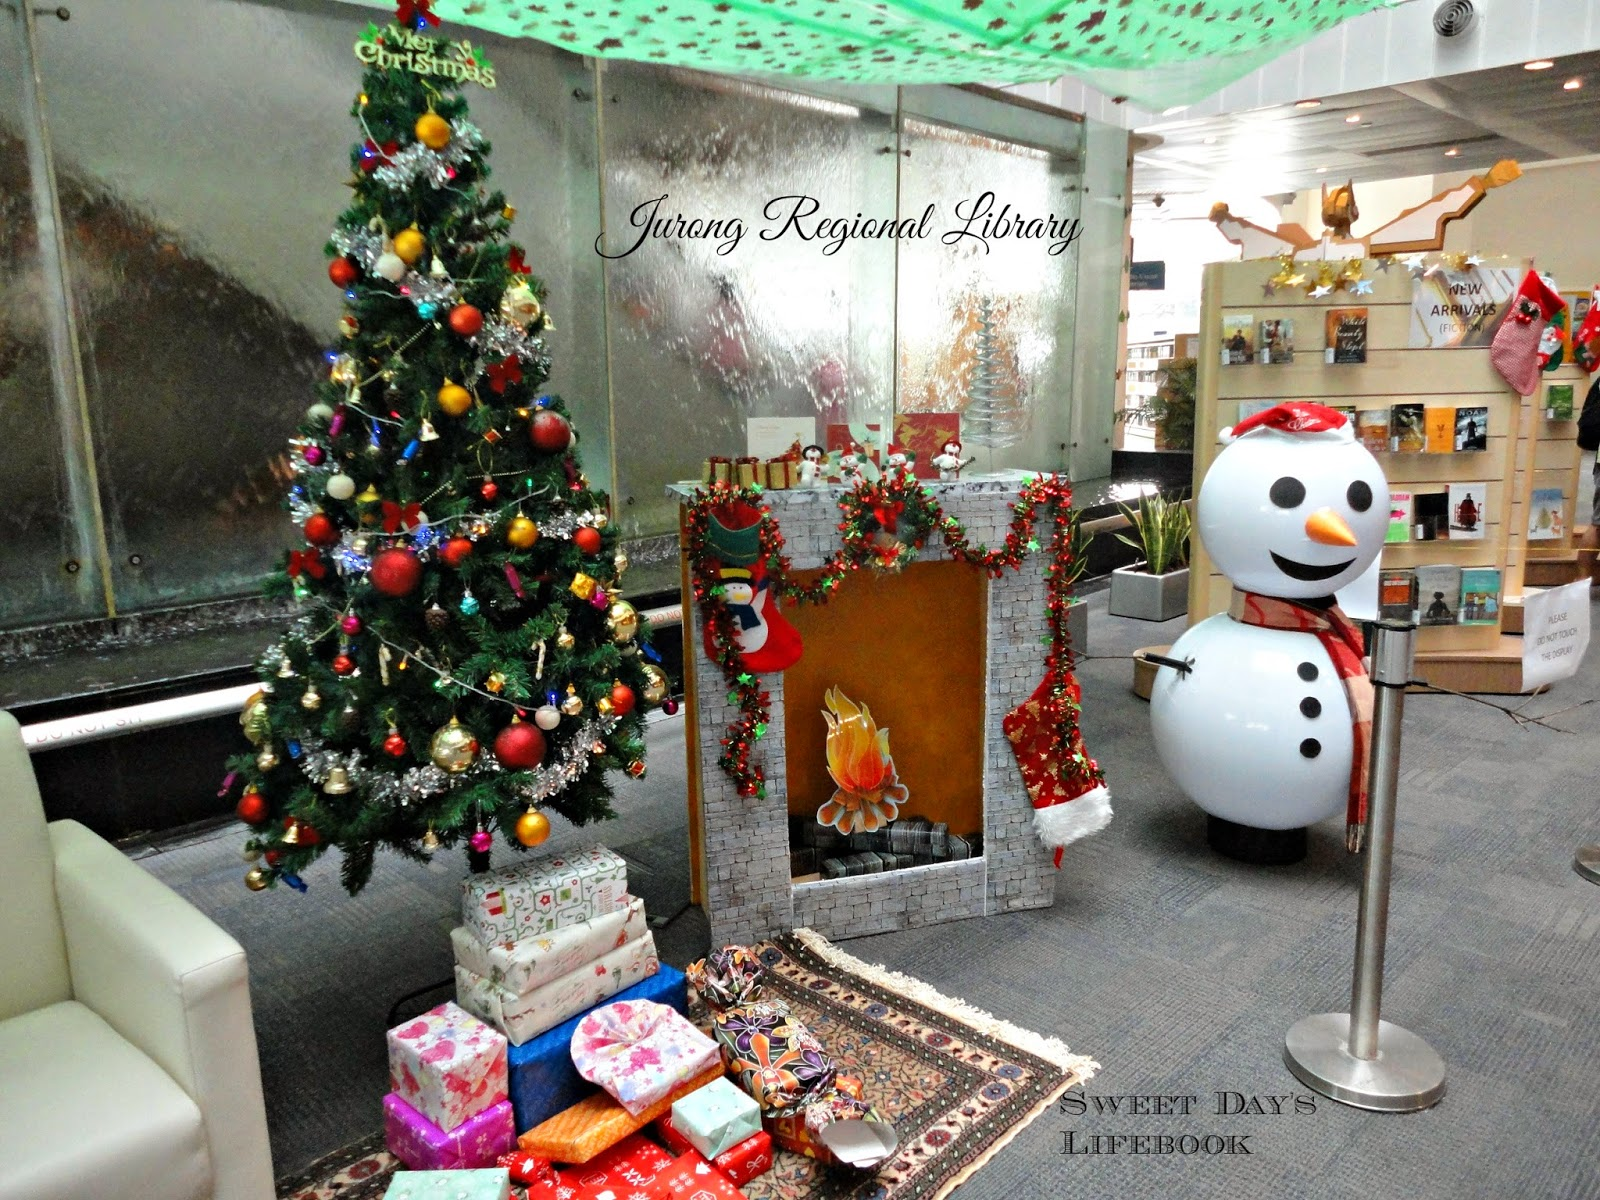 Sweet Day's Lifebook: Christmas decorations at the libraries - photo#40